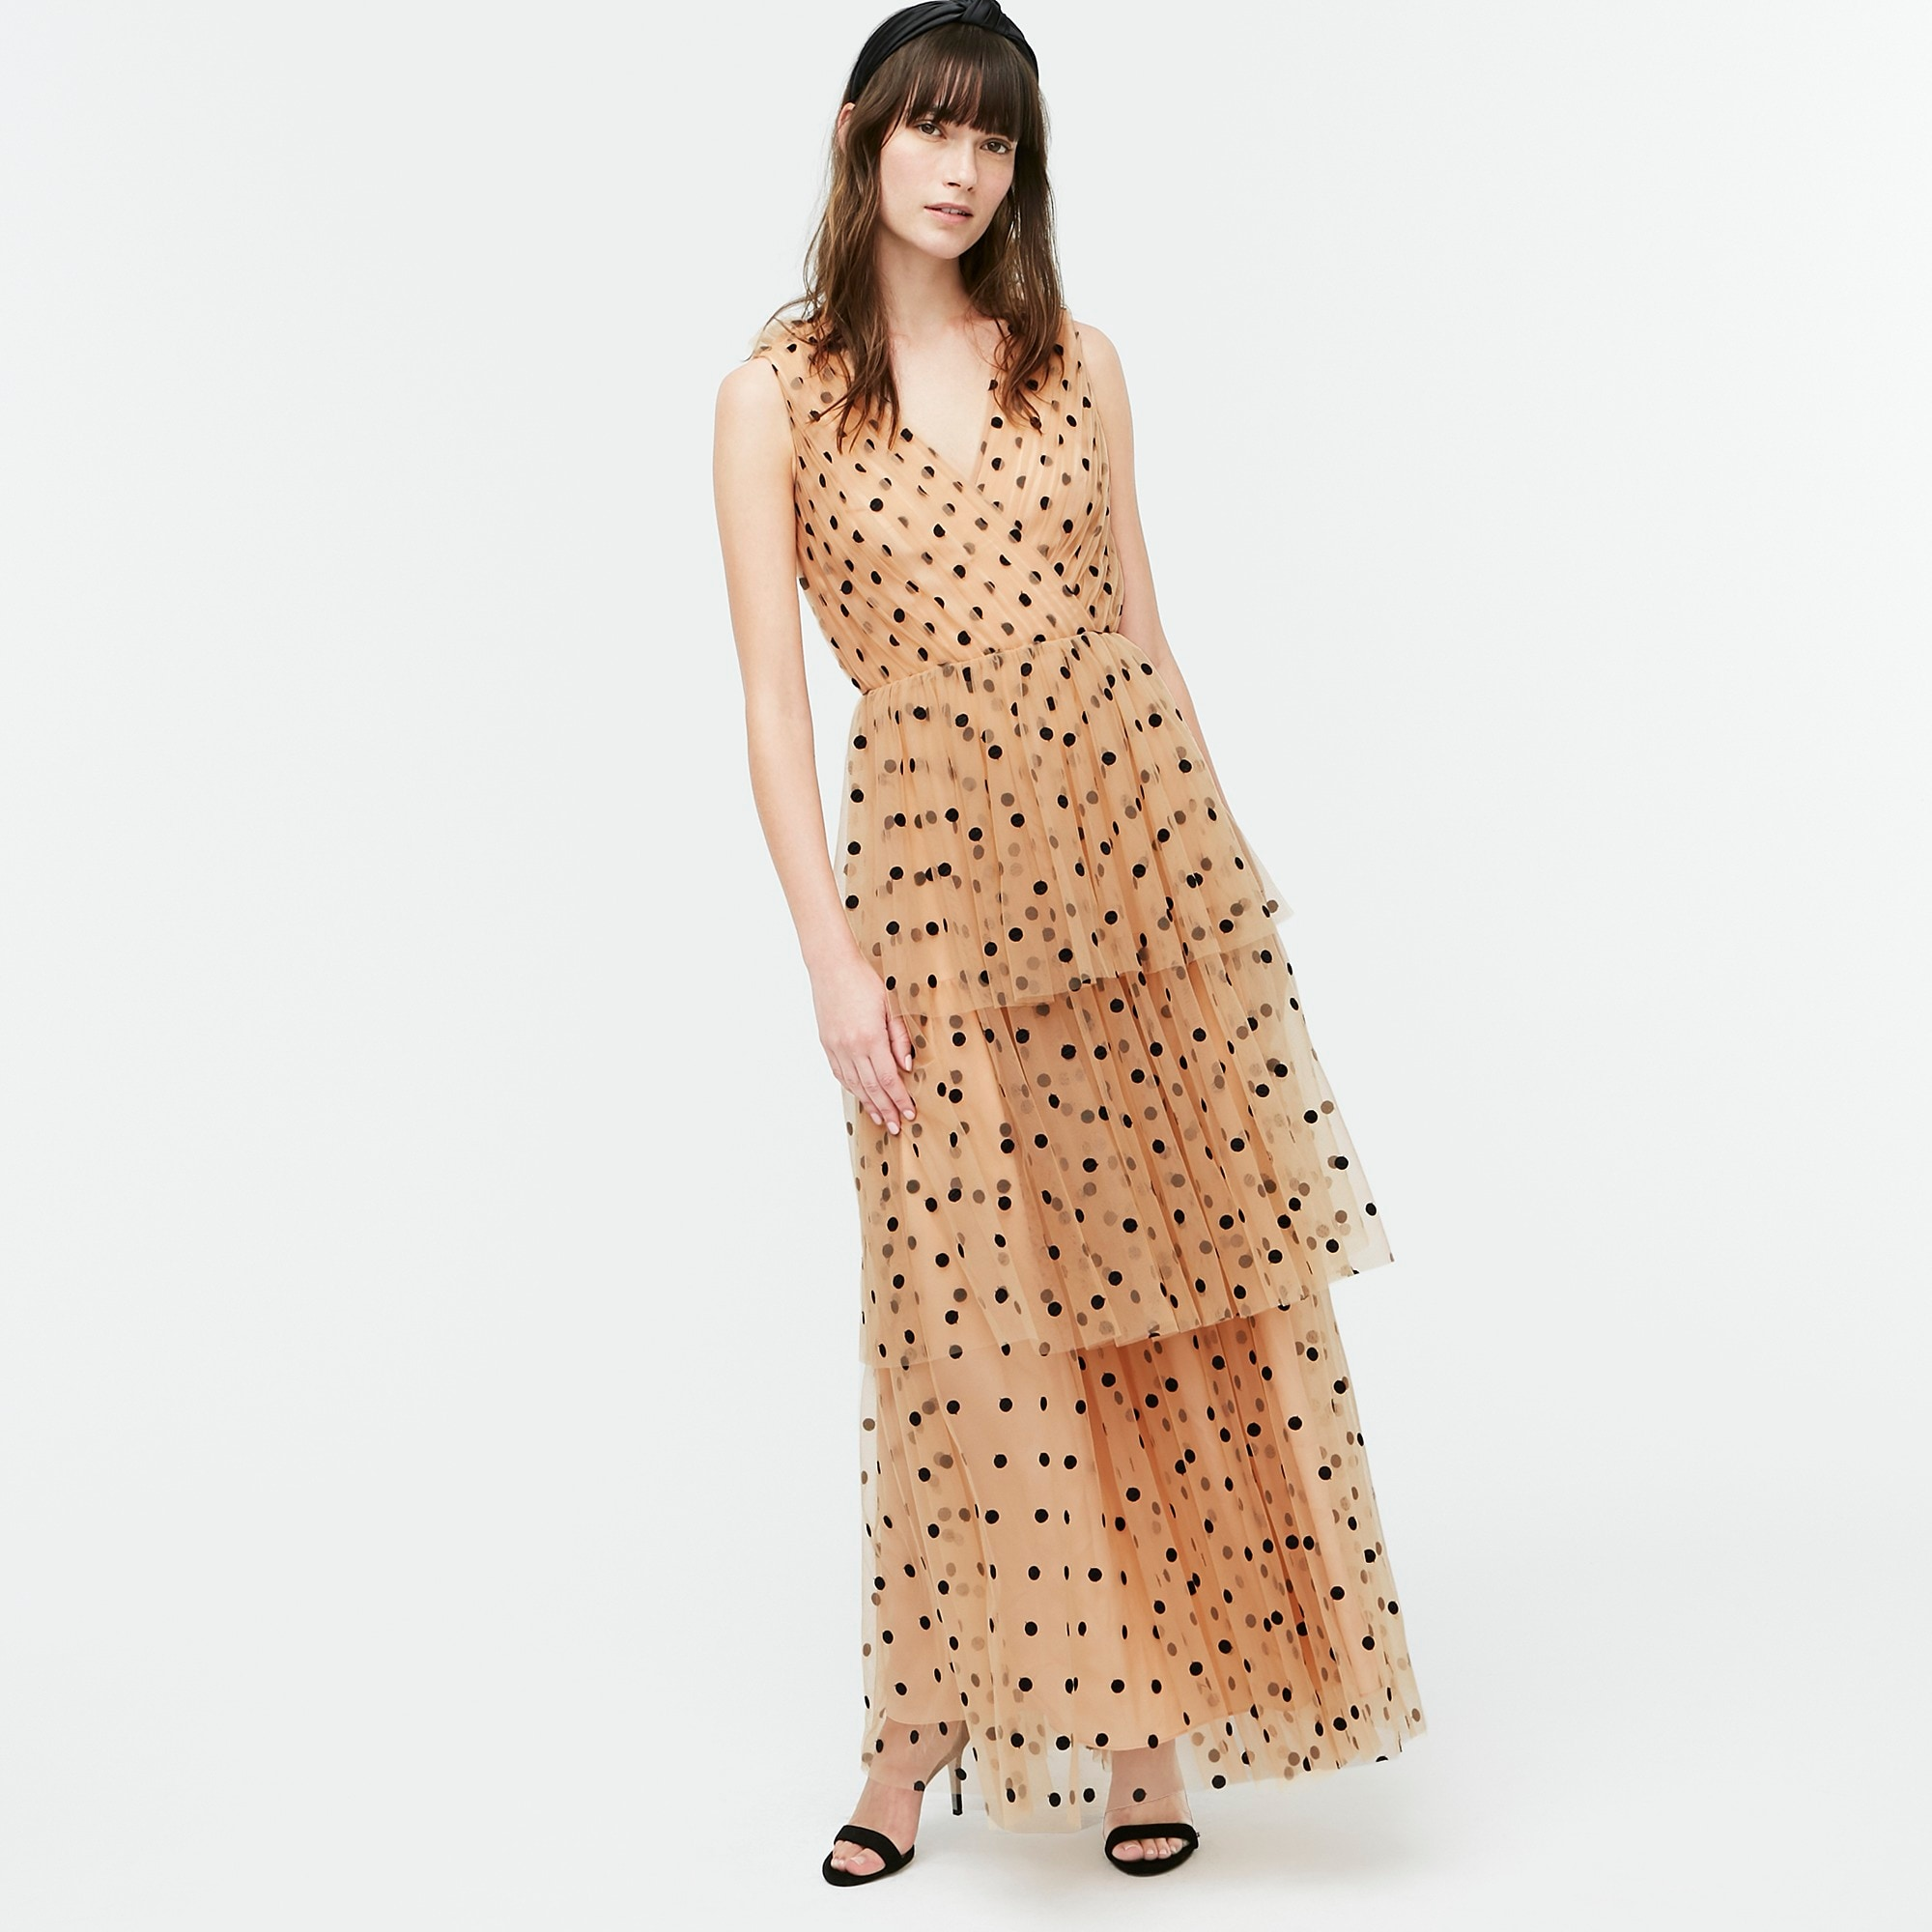 J.Crew: Tiered Halter Dress In Dot Tulle